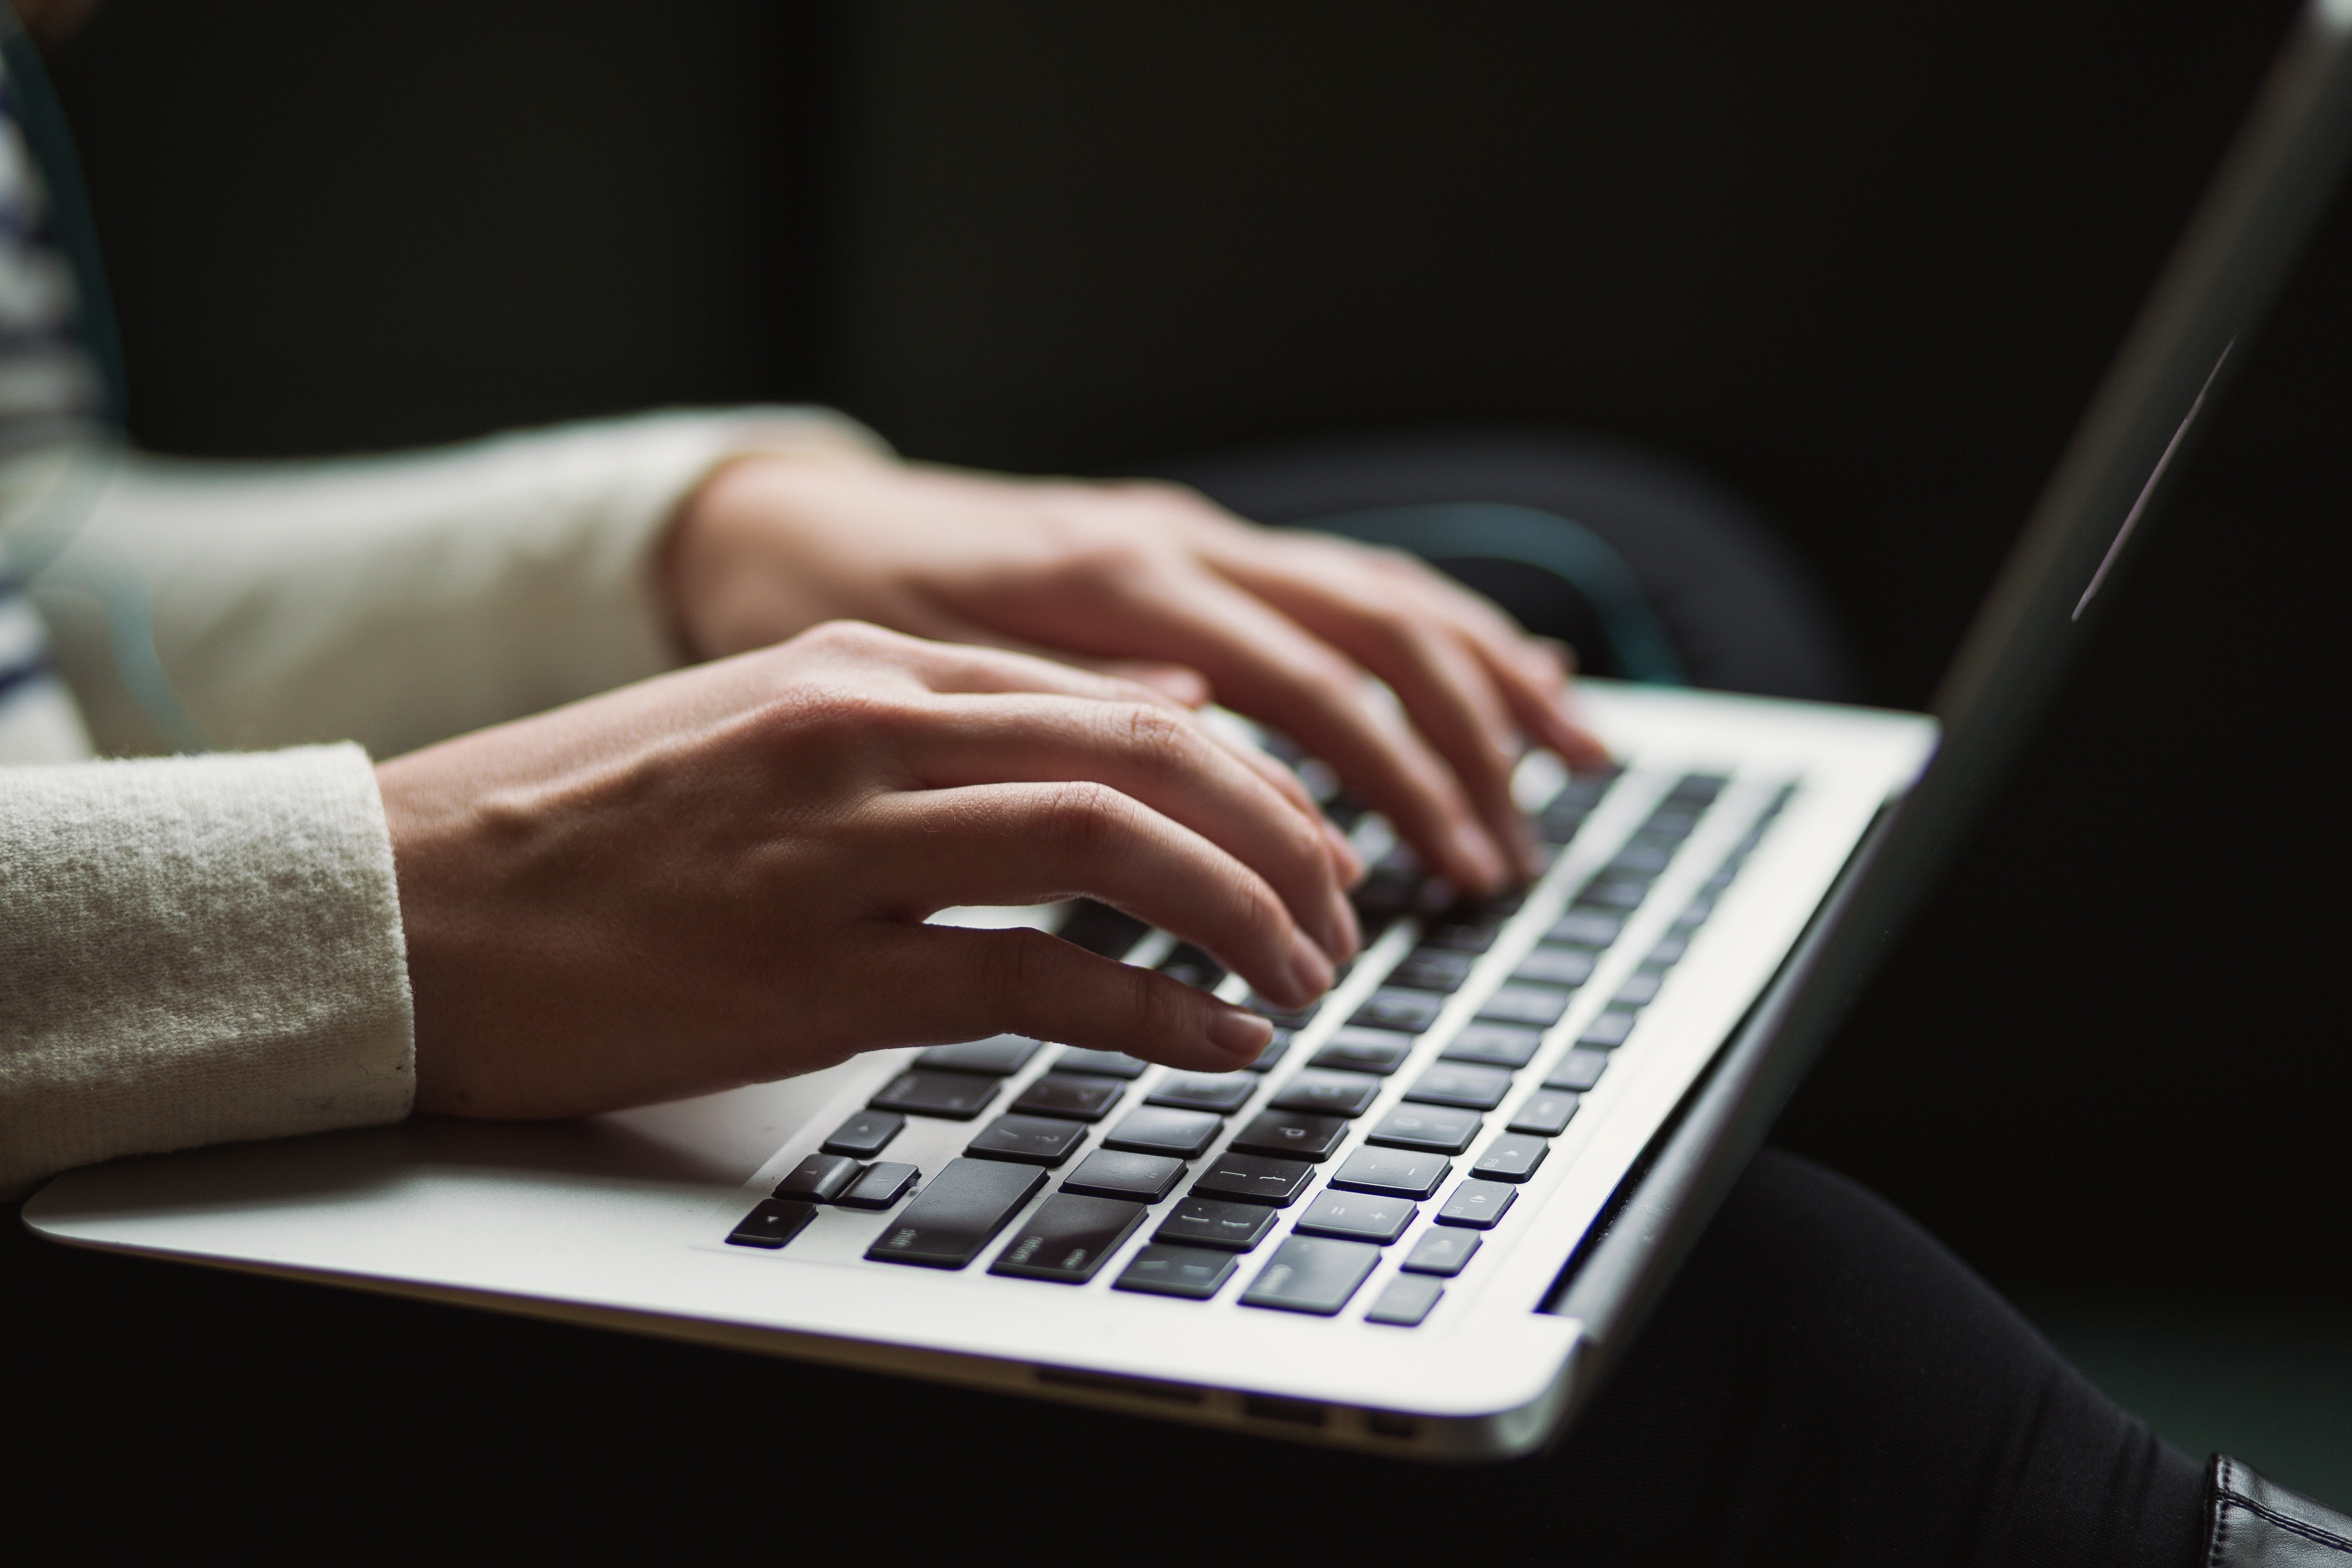 updating your blog on a laptop